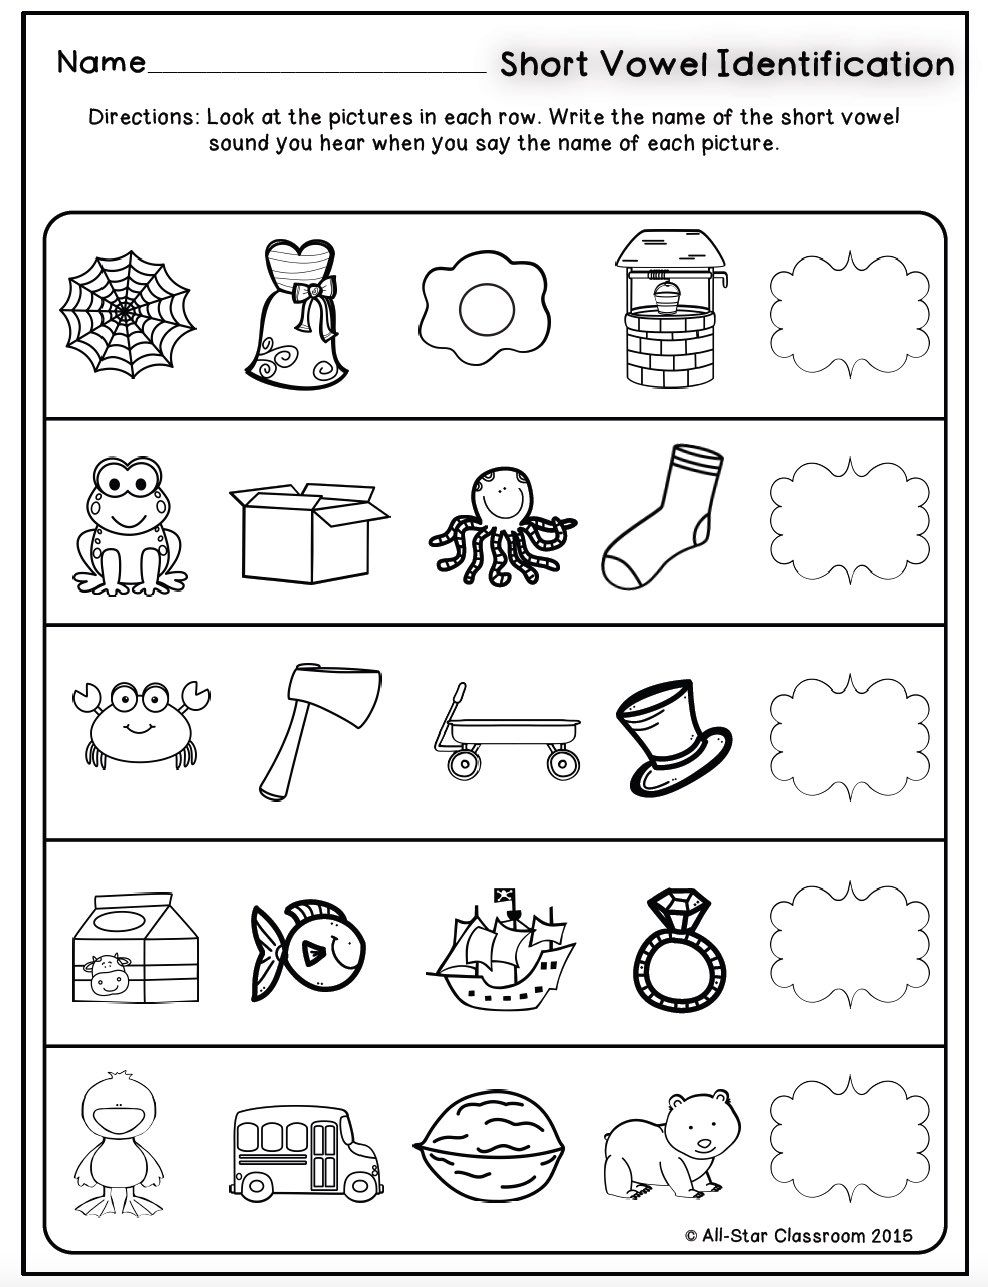 These Short Vowel Identification Printables And Sorts Are A Perfect Practice Or Assessment Opportunity For Students To Li Short Vowels Vowel Short Vowel Sounds [ 1287 x 988 Pixel ]